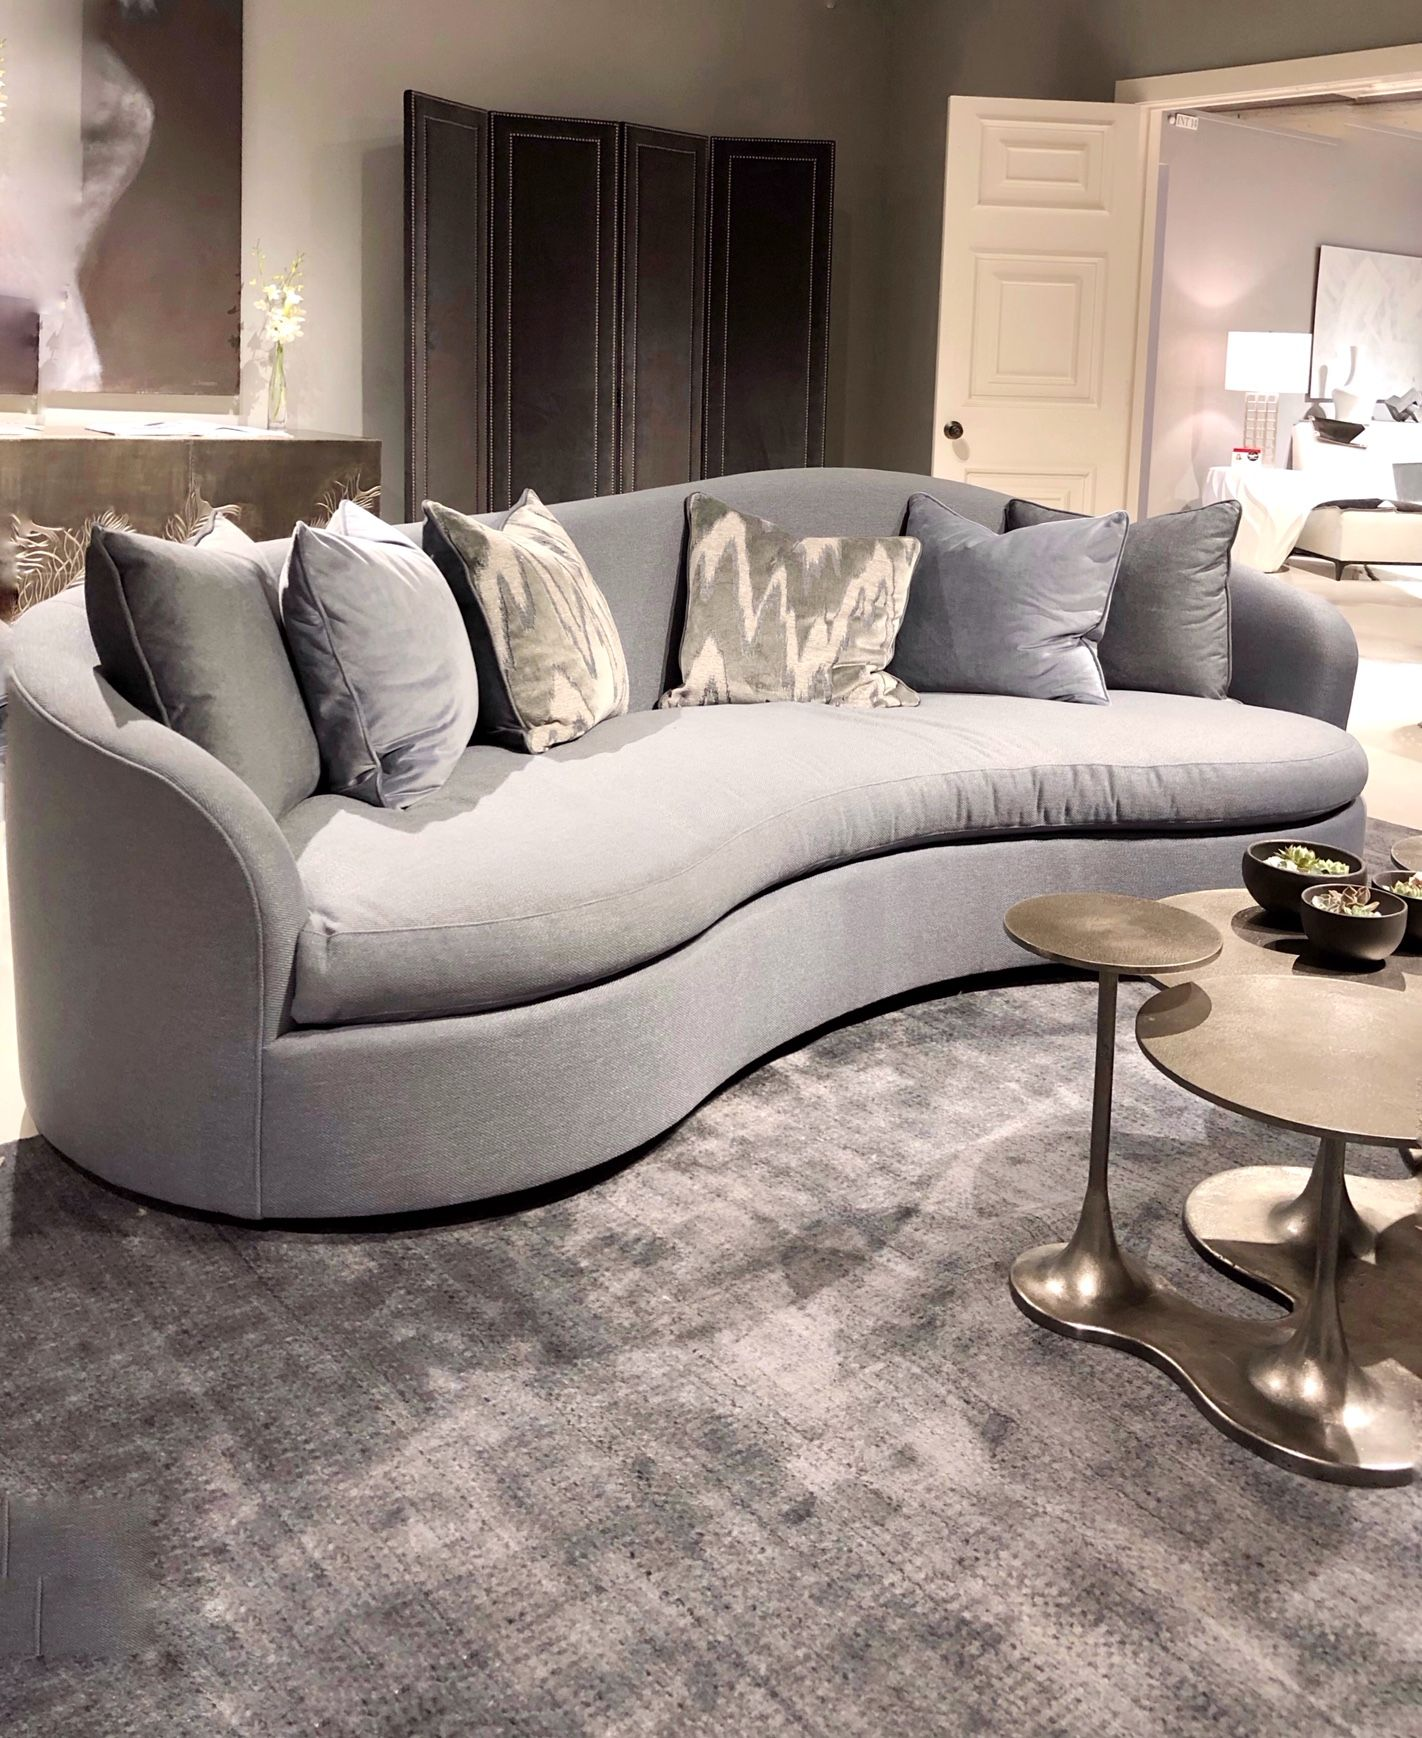 Color And Design Trends From Spring 2019 High Point Market Part One Color And Design Trends From Spring 2019 High Point Market Grey Sofa Design Midcentury Modern Dining Chairs Interior Design Programs